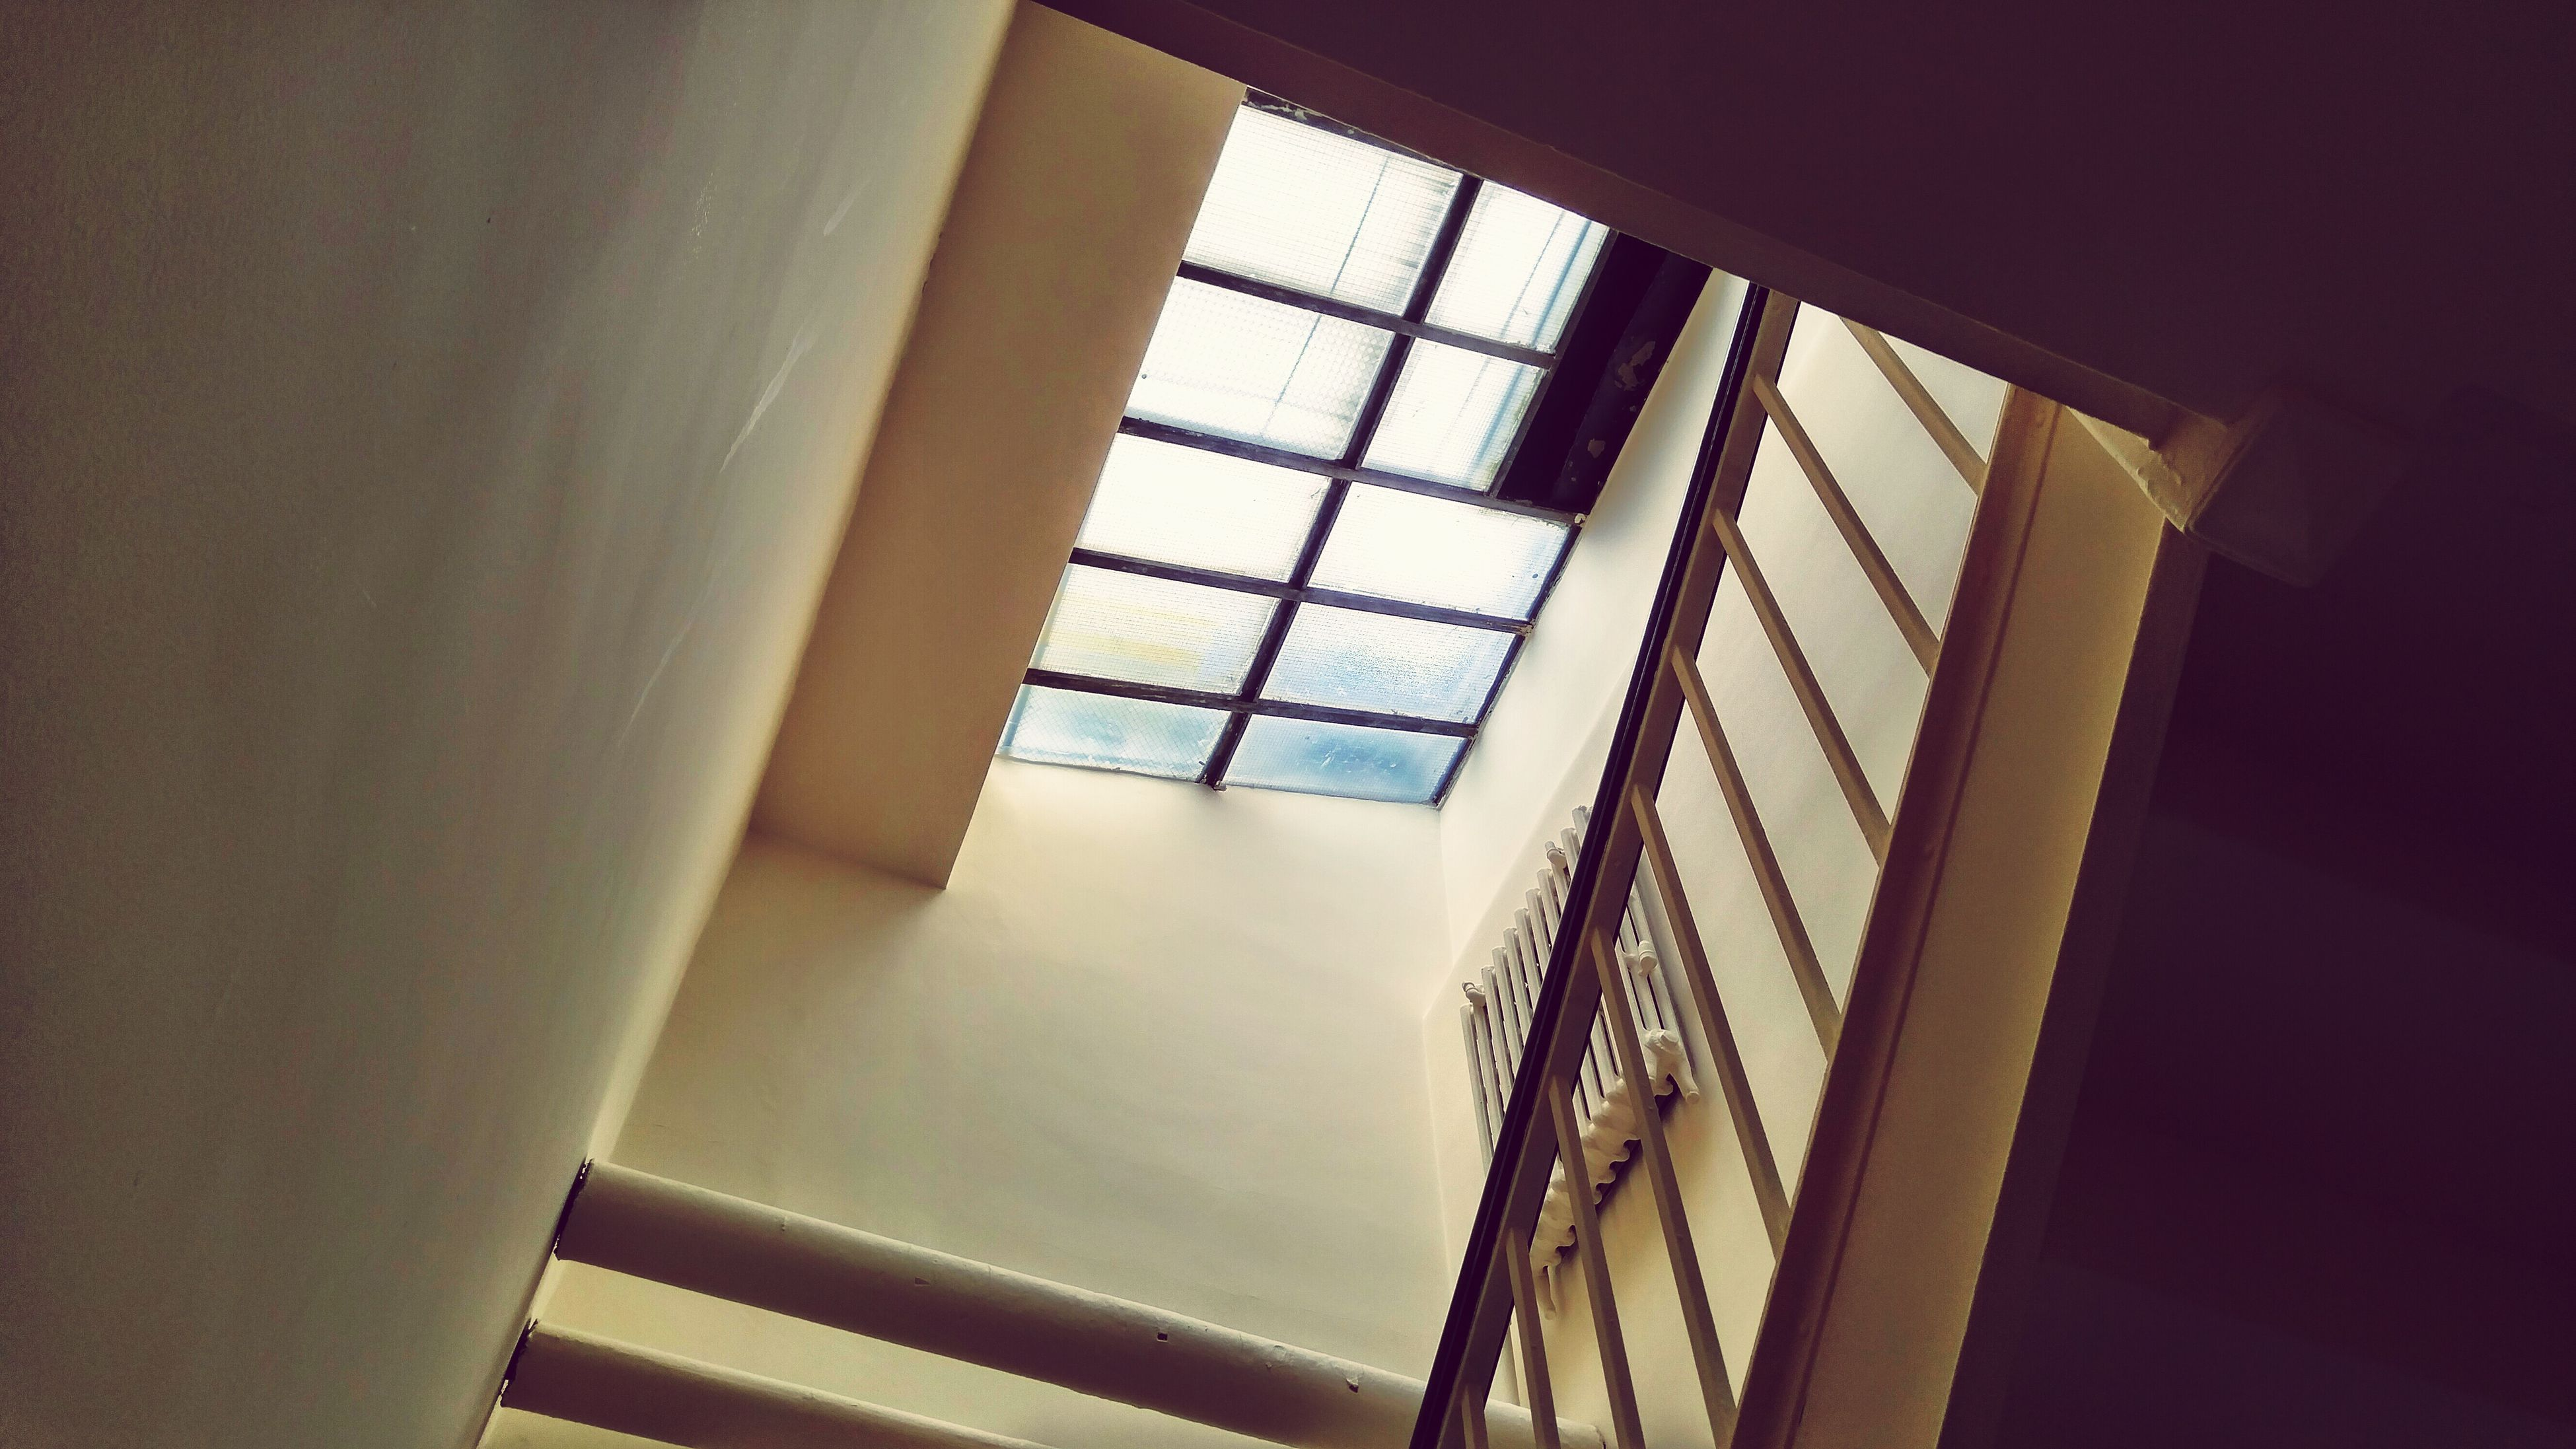 indoors, architecture, built structure, low angle view, staircase, railing, steps and staircases, steps, modern, building, window, ceiling, building exterior, glass - material, no people, directly below, pattern, day, skylight, sunlight